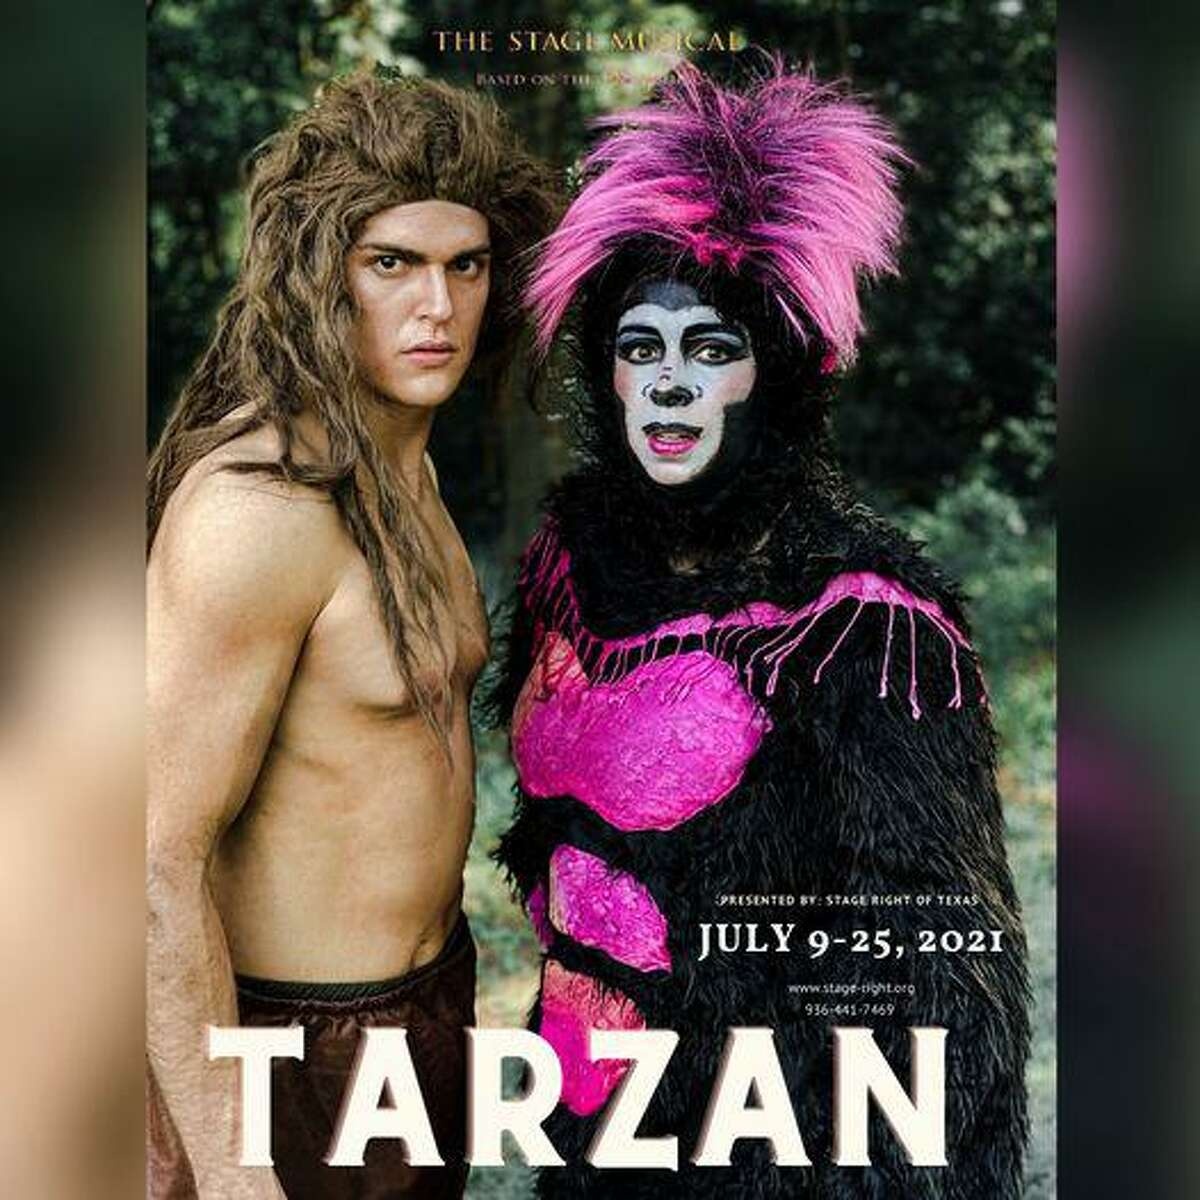 """Stage Right of Texas presents """"Tarzan"""" opening July 9 at the Crighton Theatre. Pictured are siblings Lucas Olivarez as Tarzan and Christina Sato as Kala."""